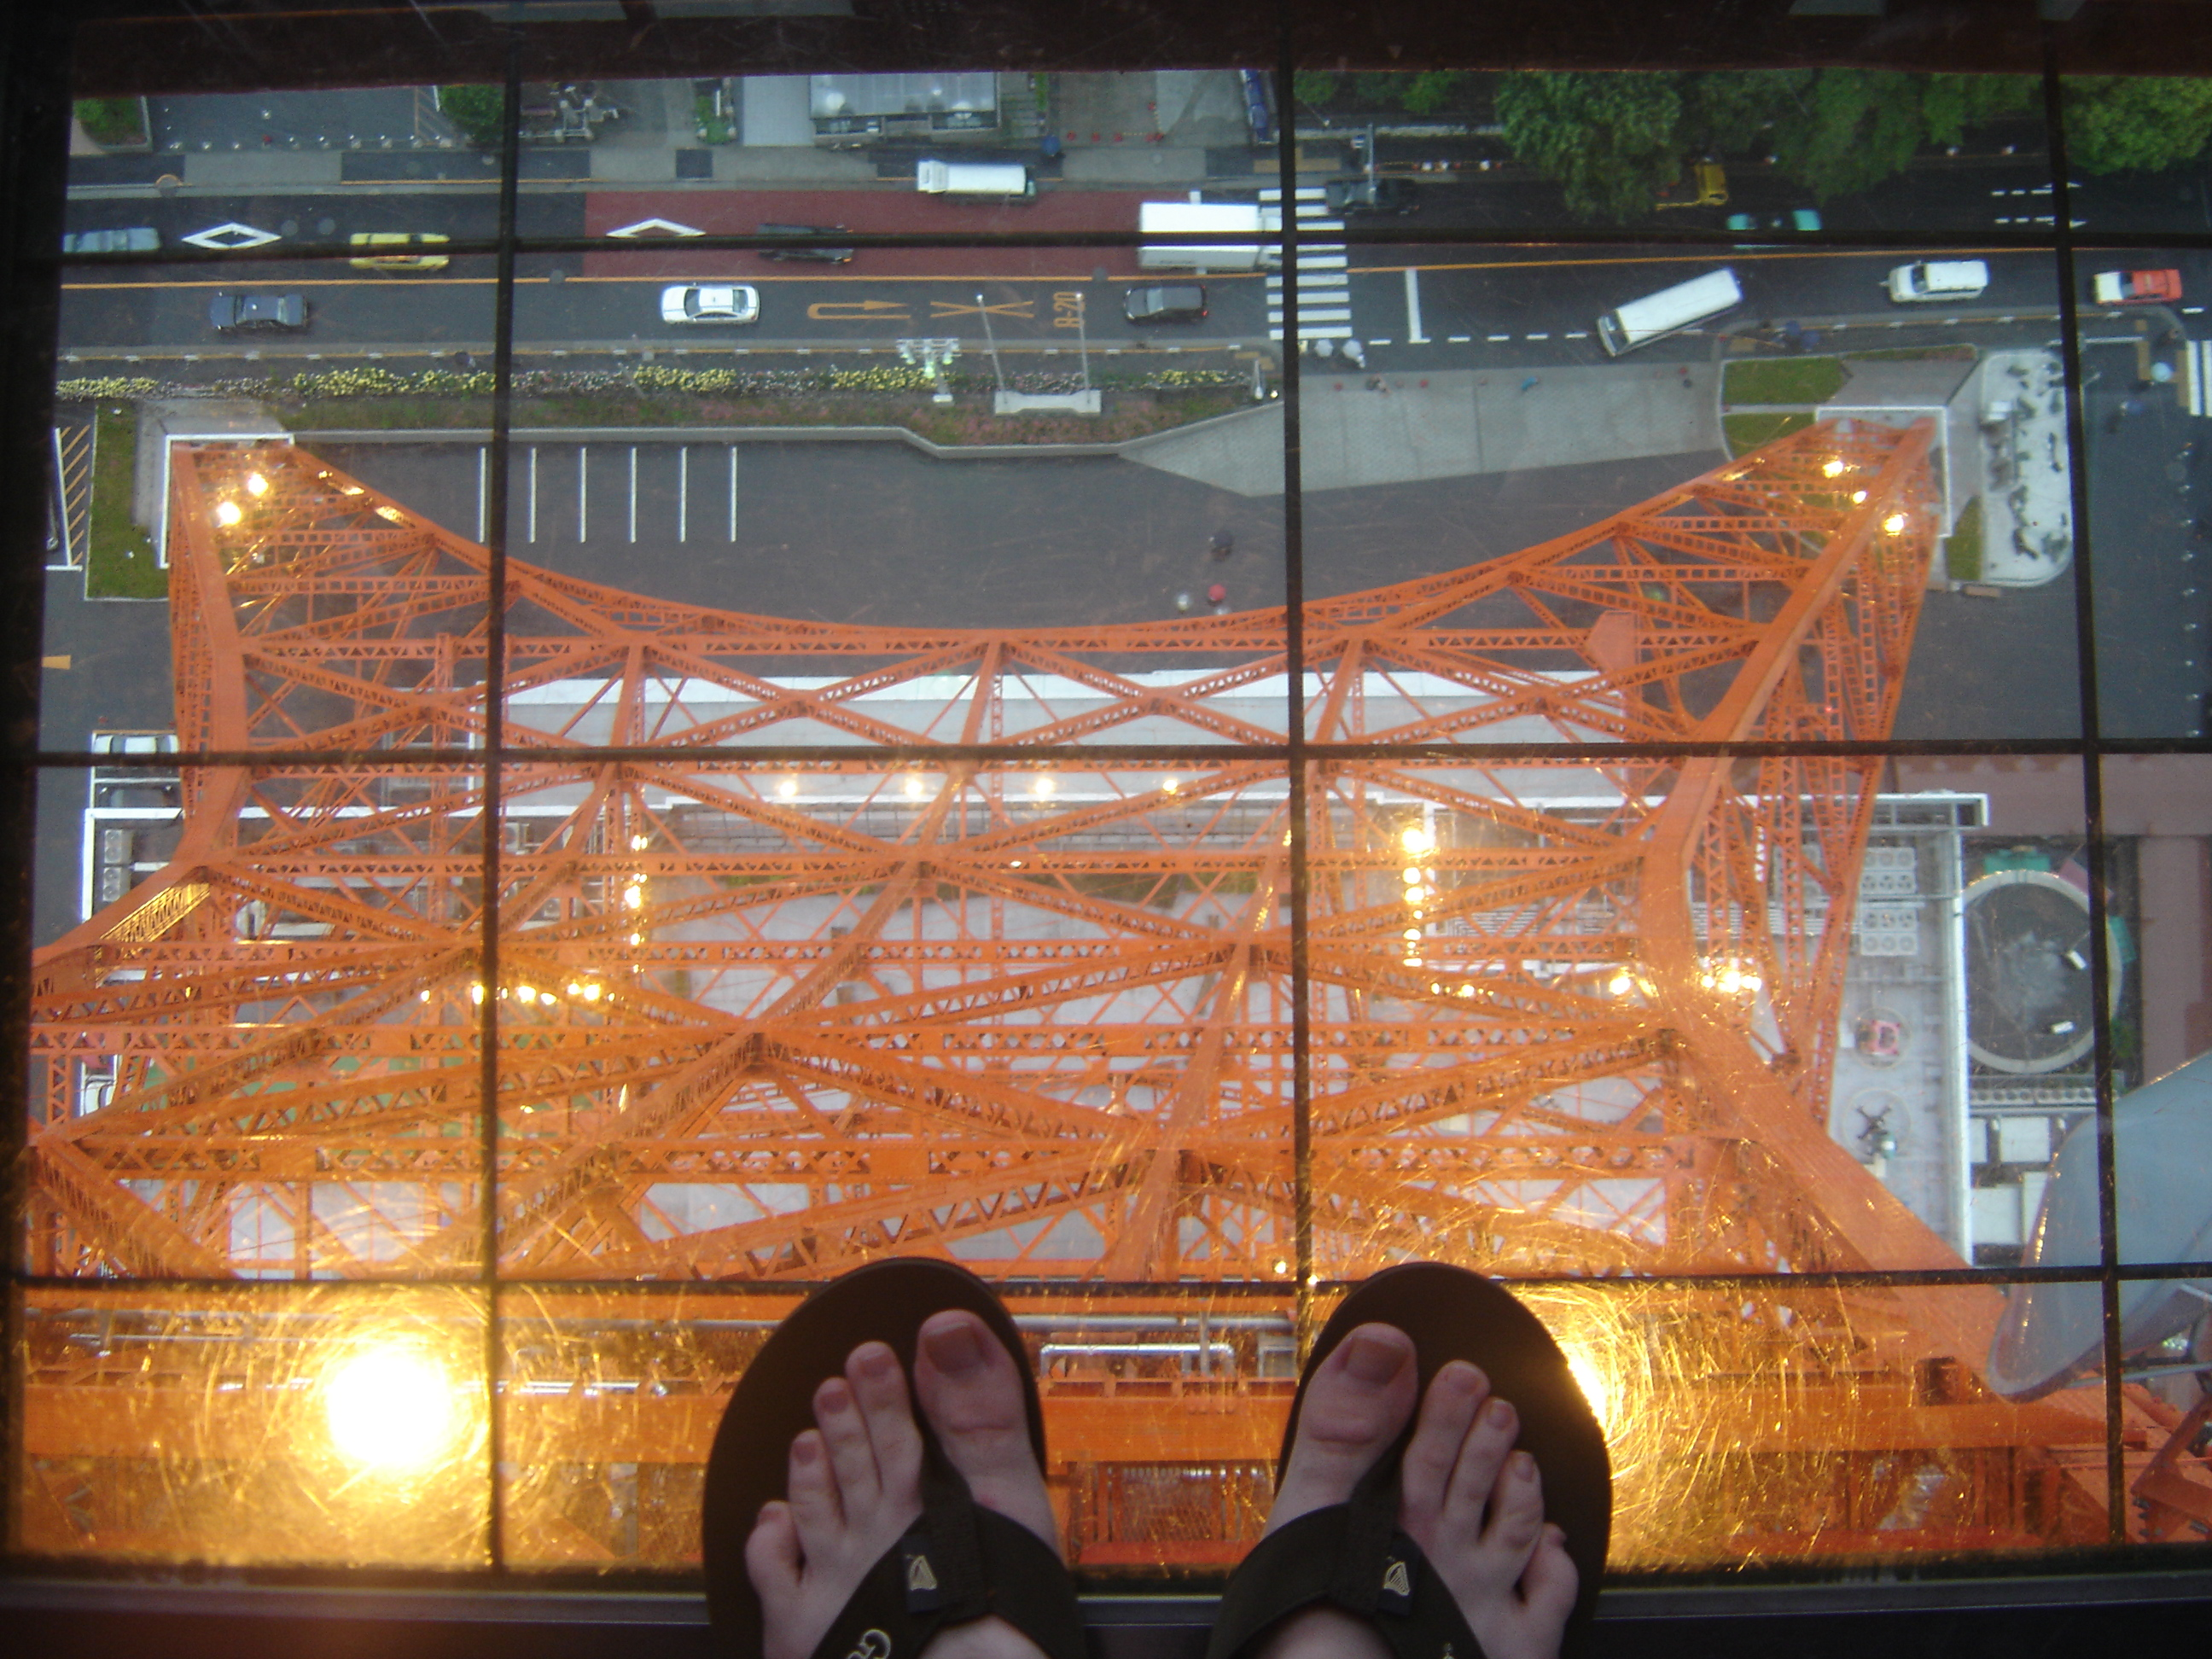 One of the Tokyo lookdown windows. Photo by Torsodog.